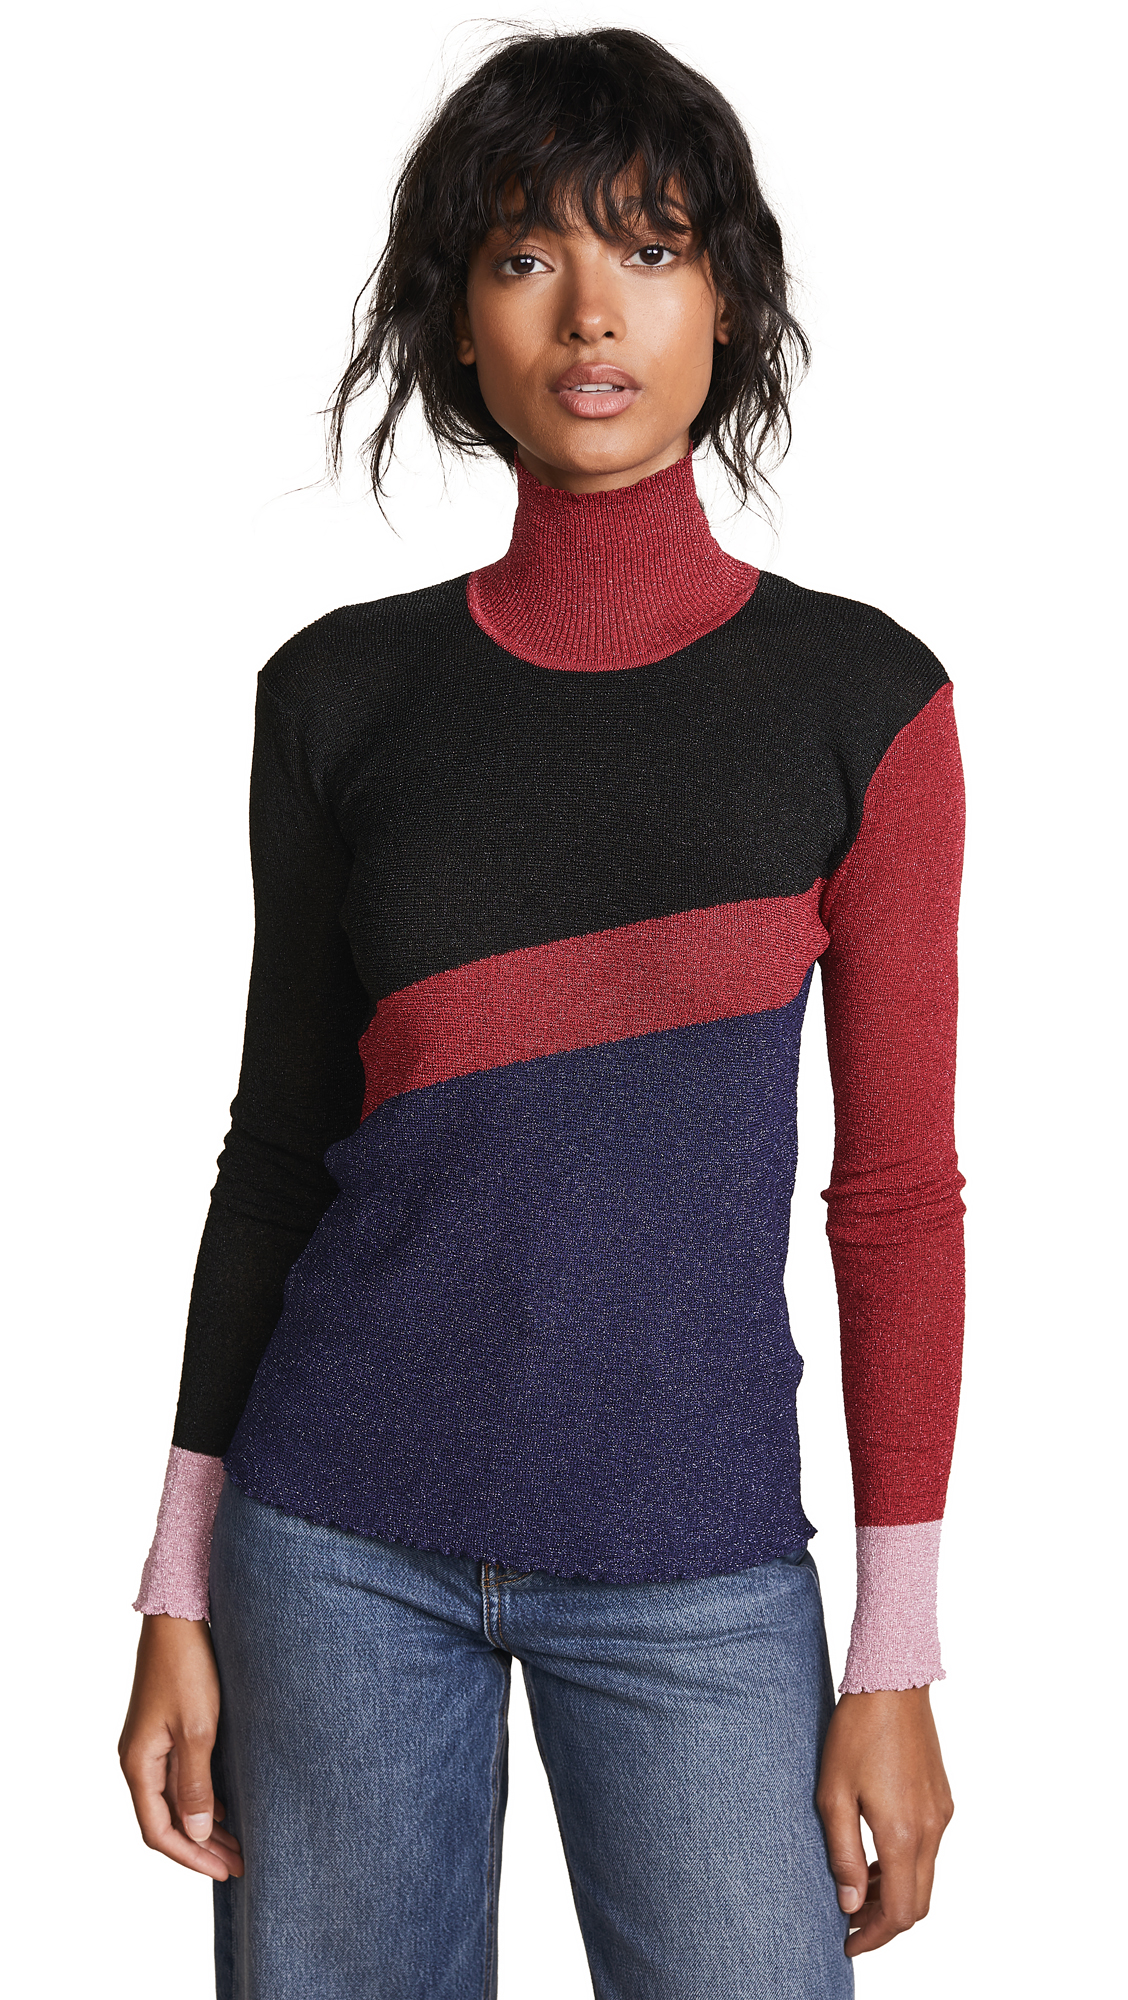 PH5 Chad Metallic Turtleneck Top in Maroon/Blue